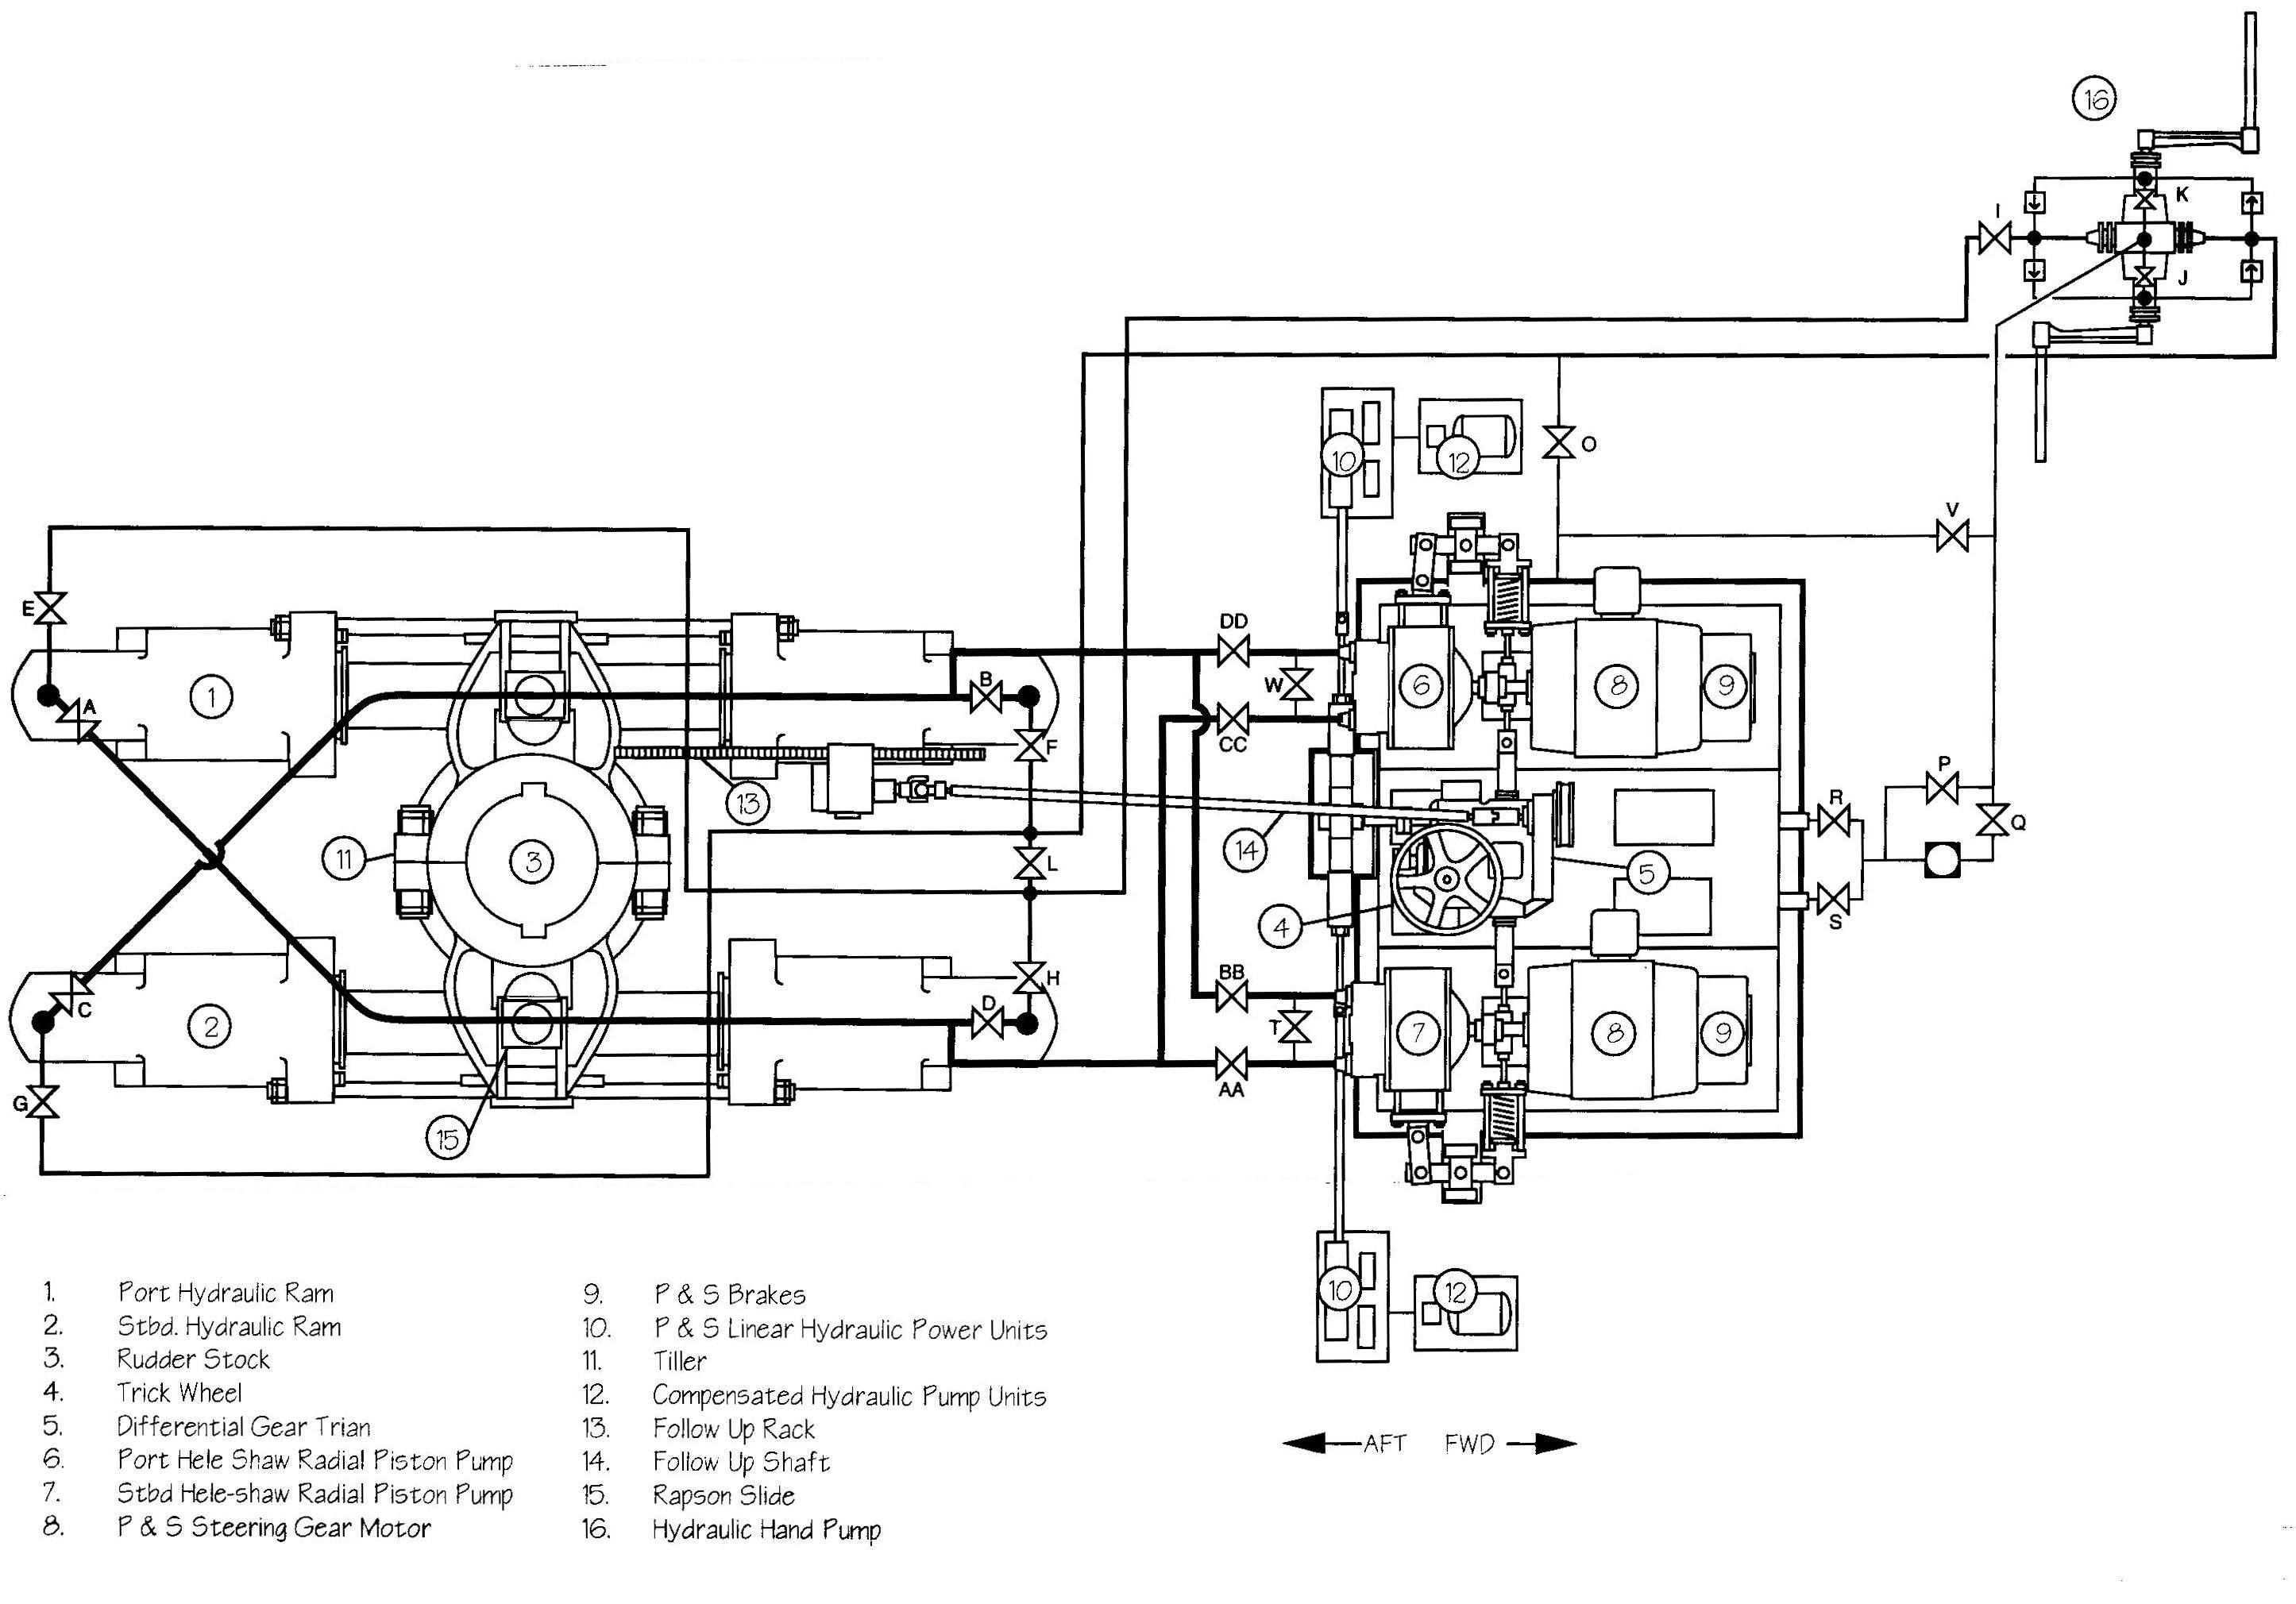 hydraulic pump diagram wiring diagram page 04 jpg with